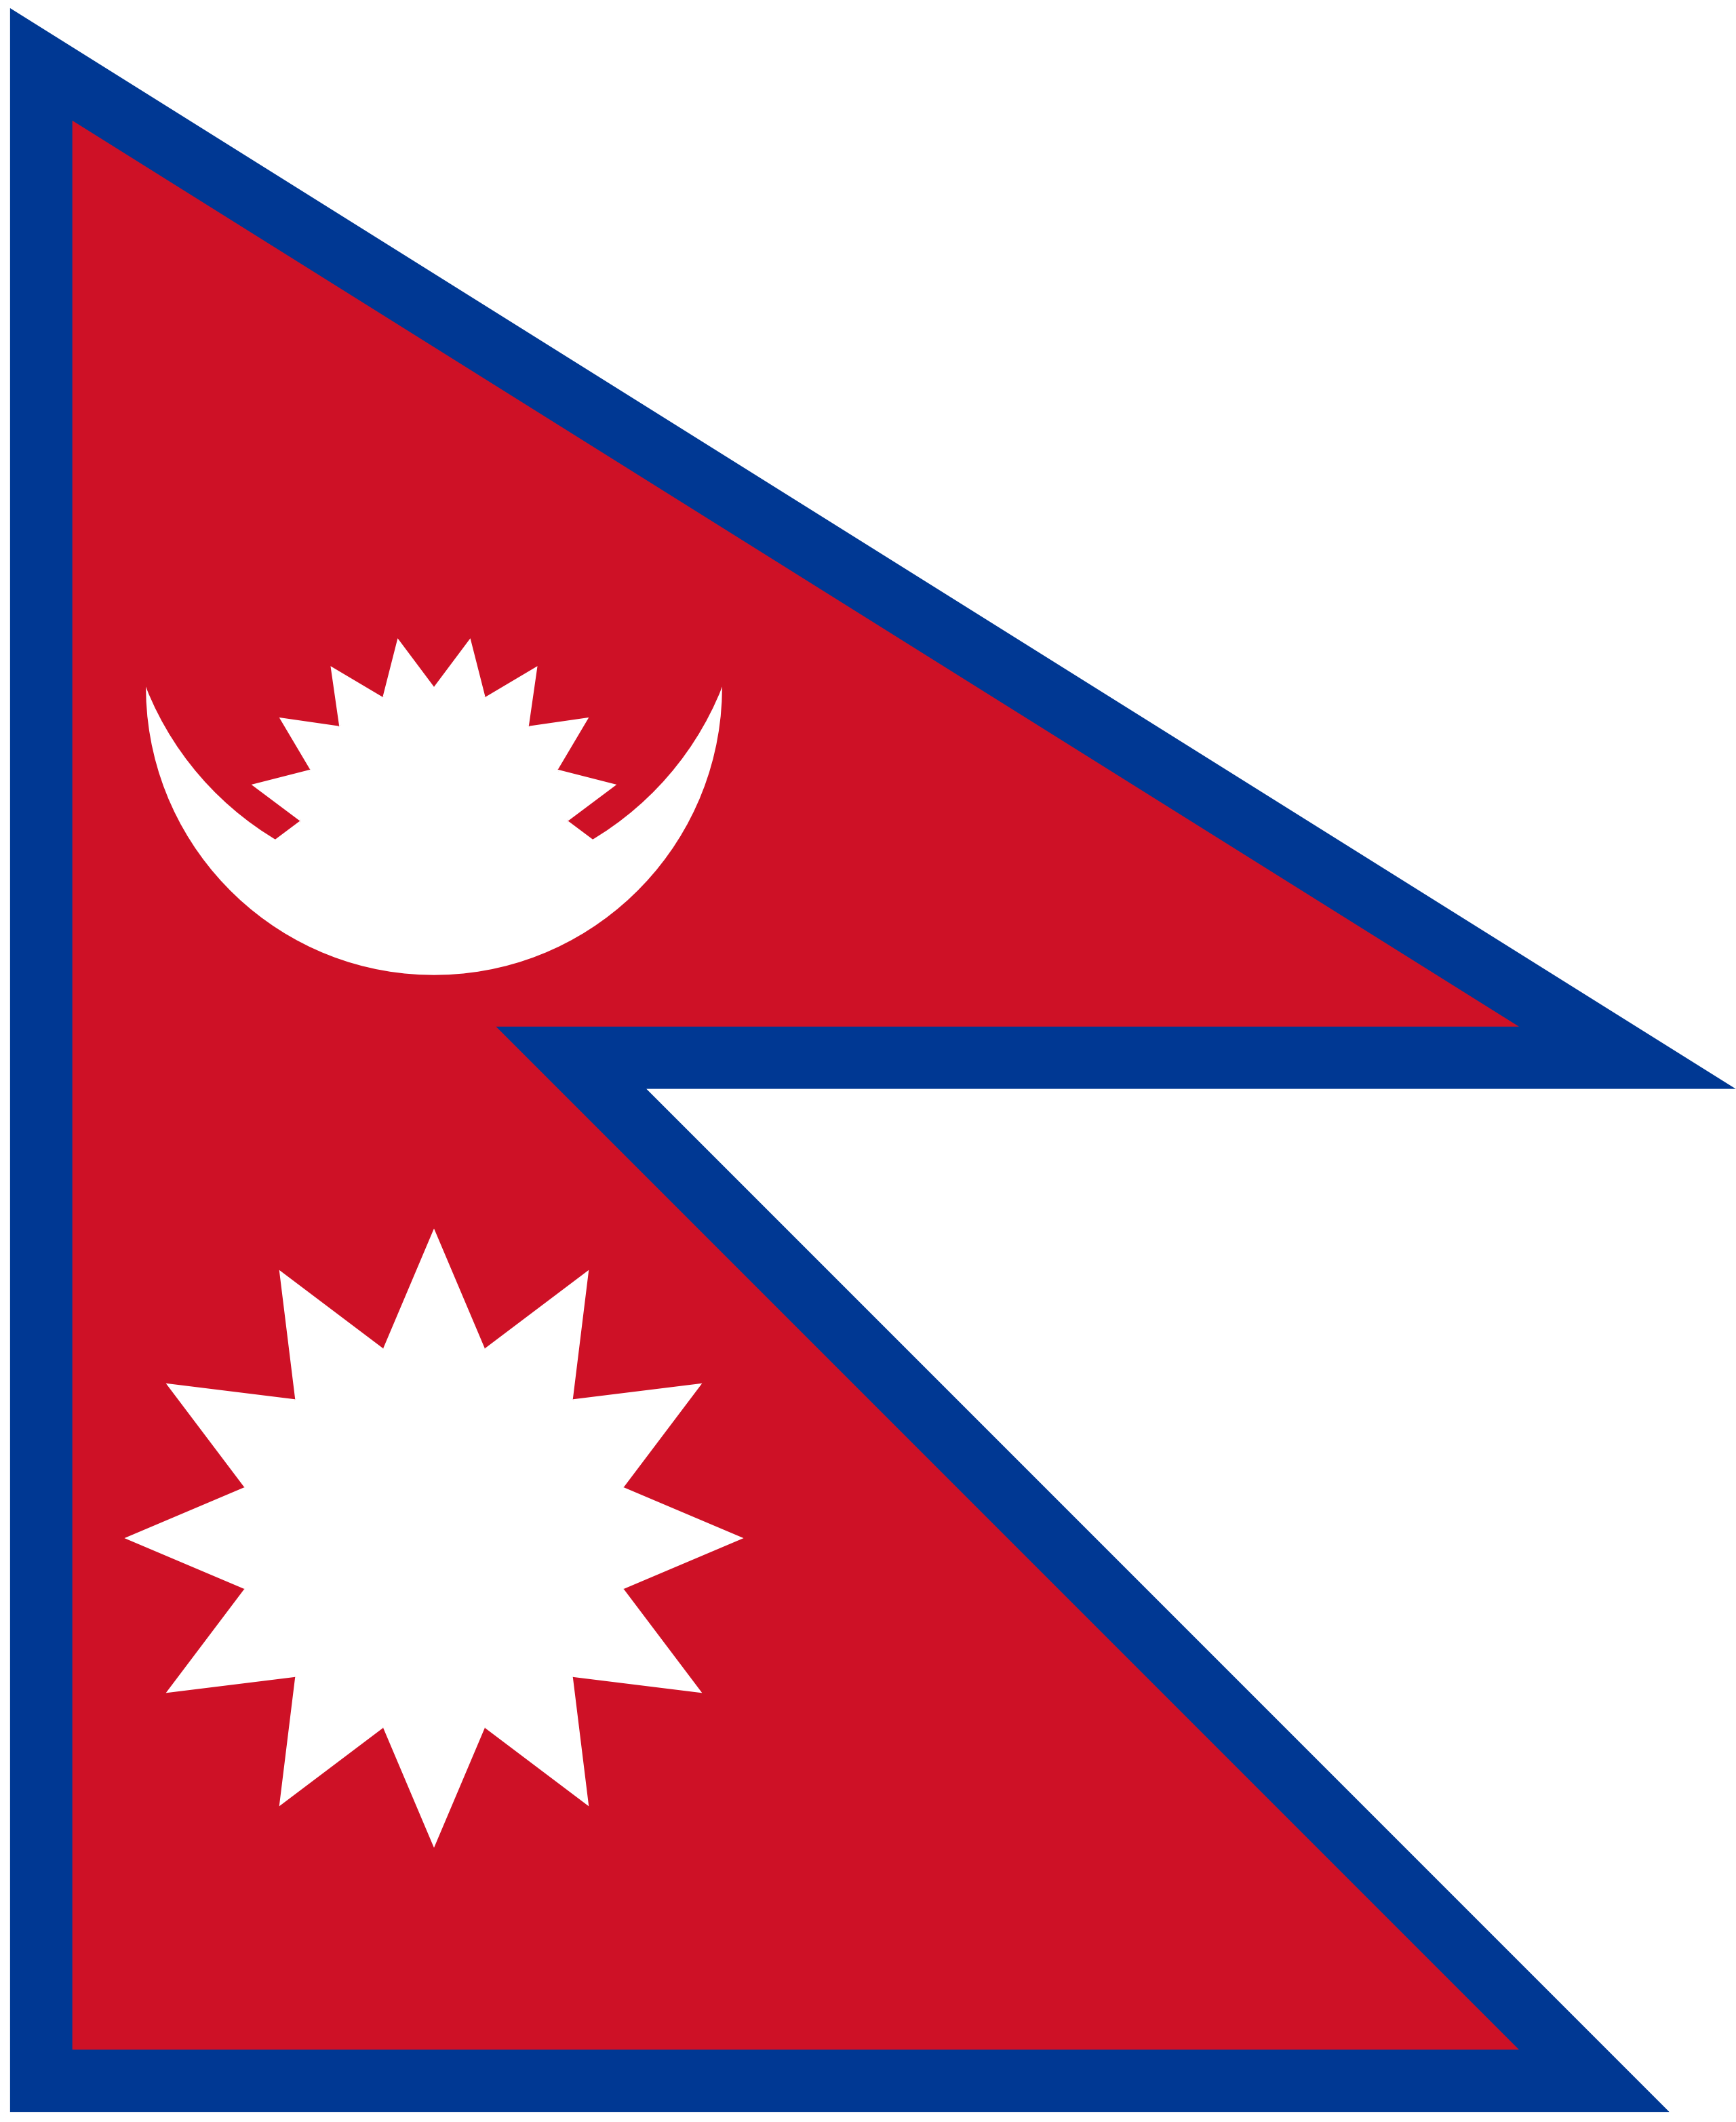 Nepal | Flags of countries